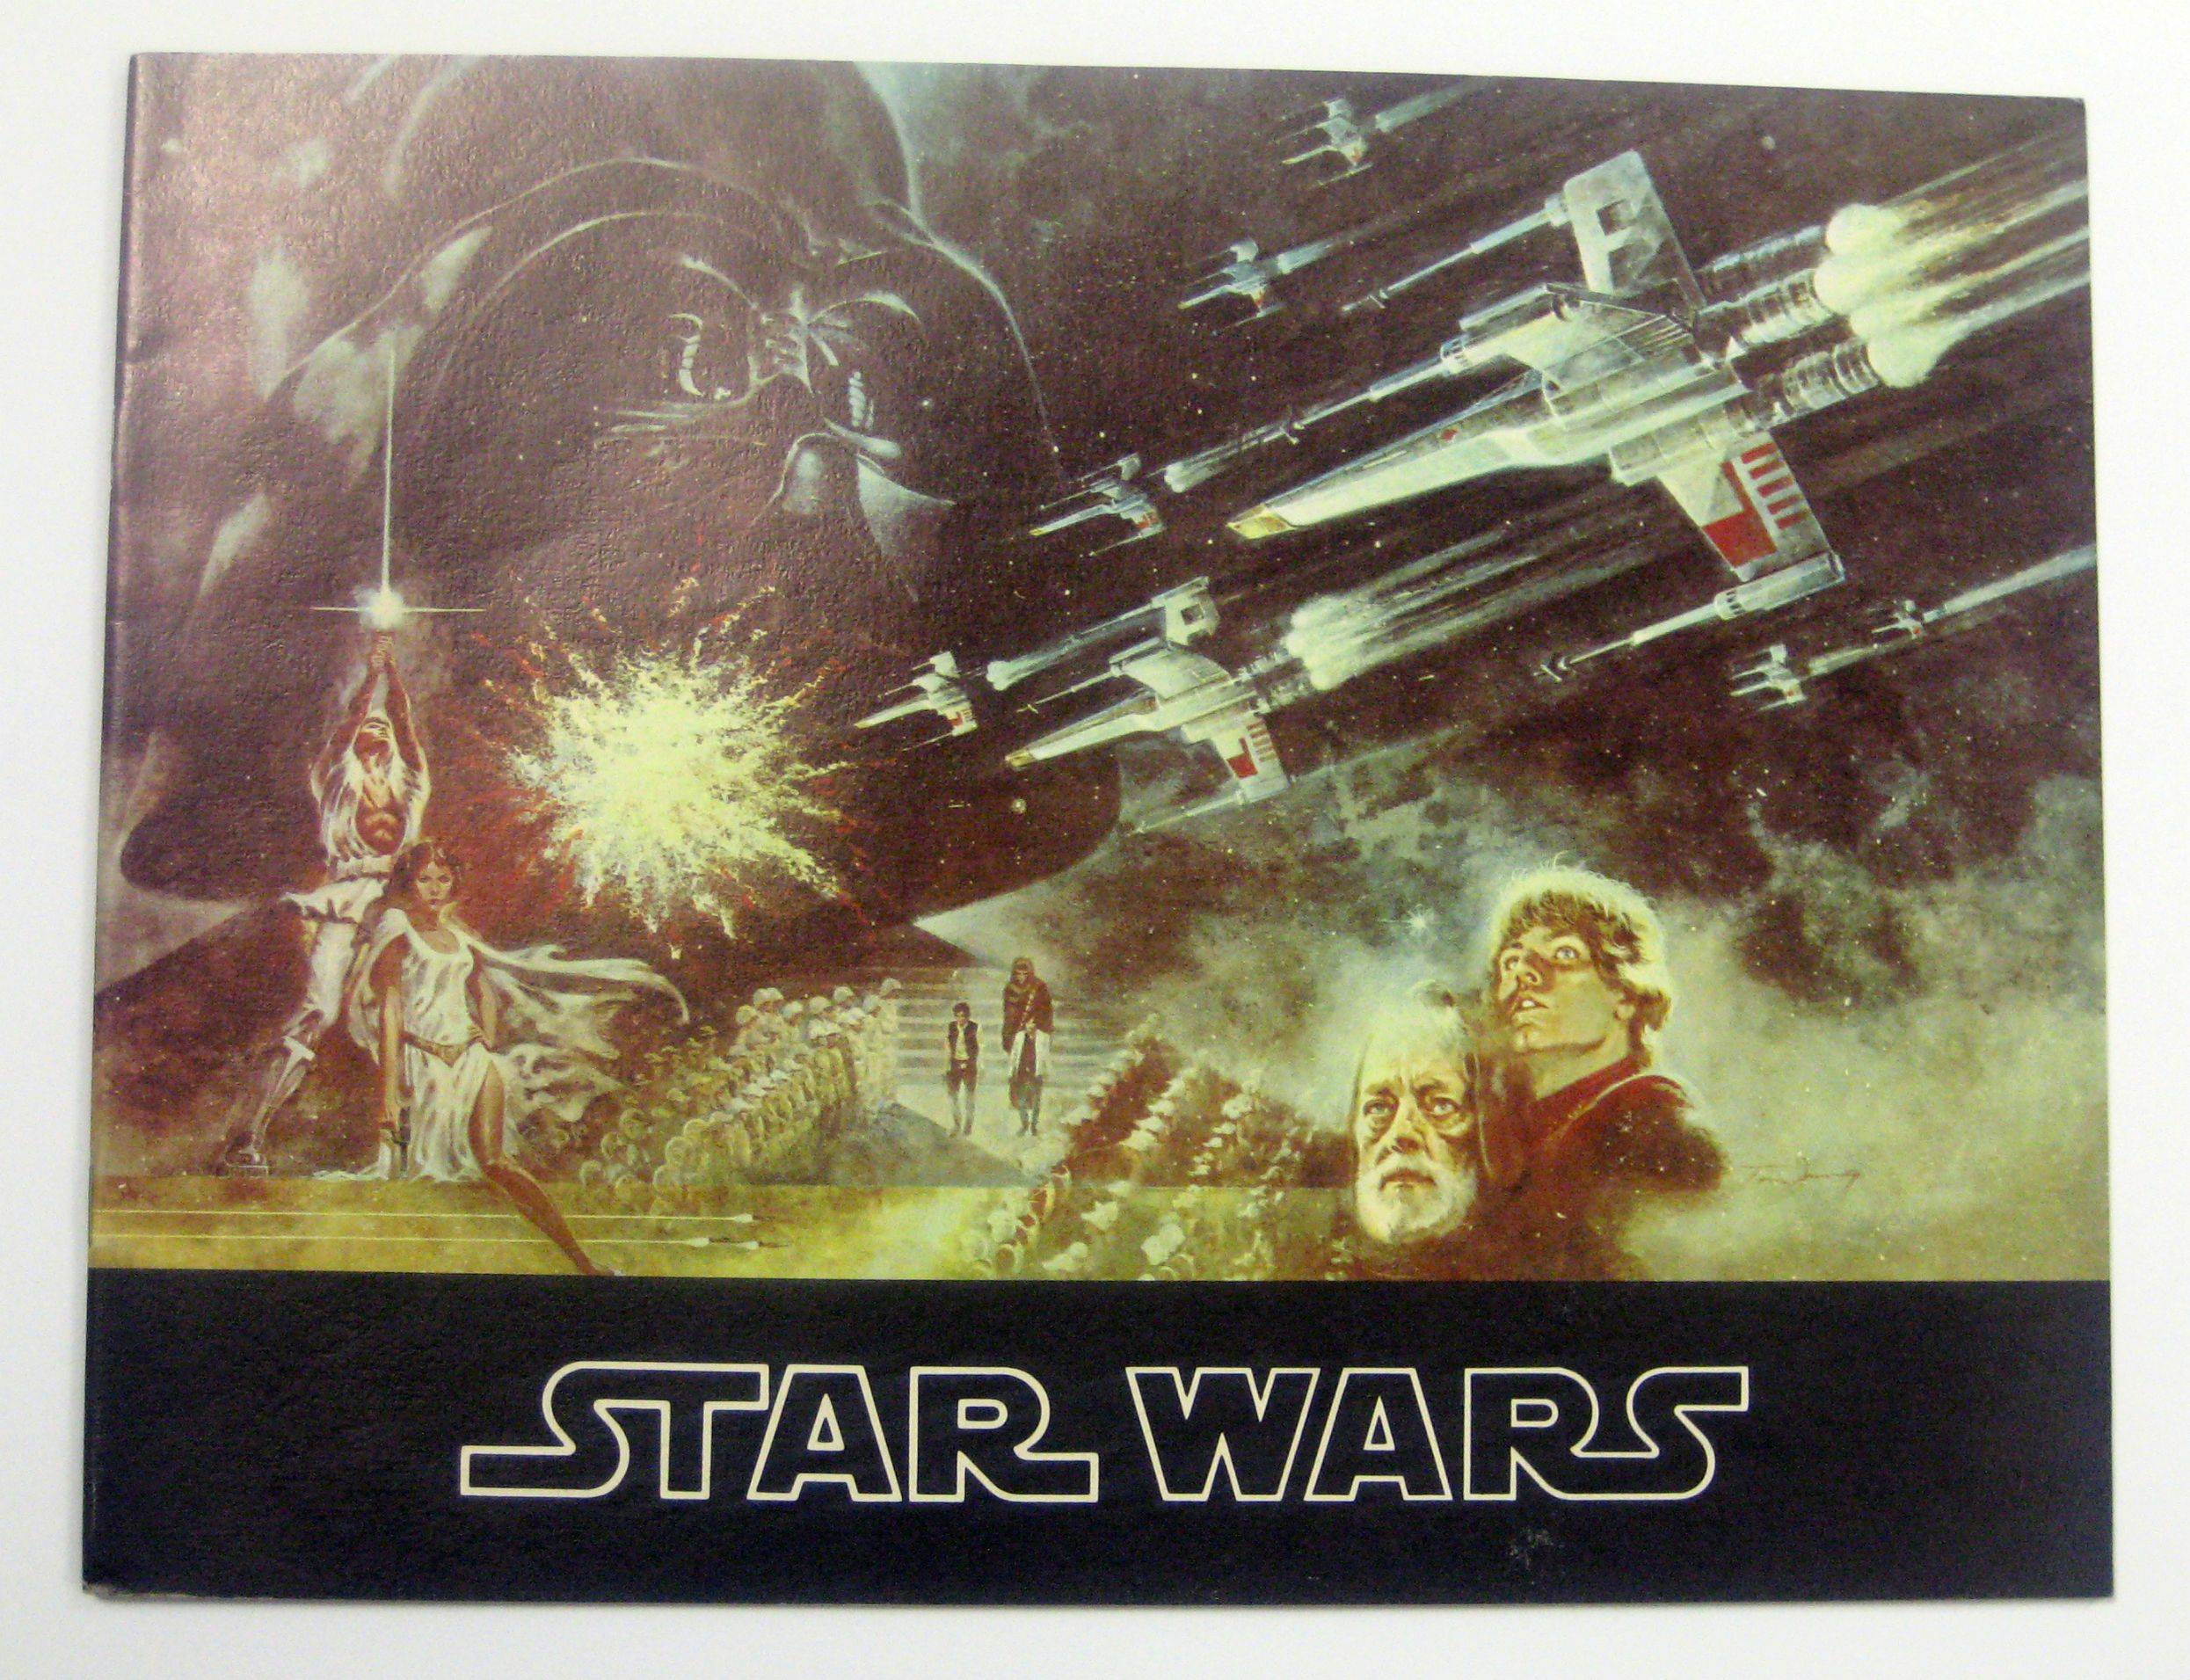 Spellbinding or dull? How critics reviewed 'Star Wars' in 1977